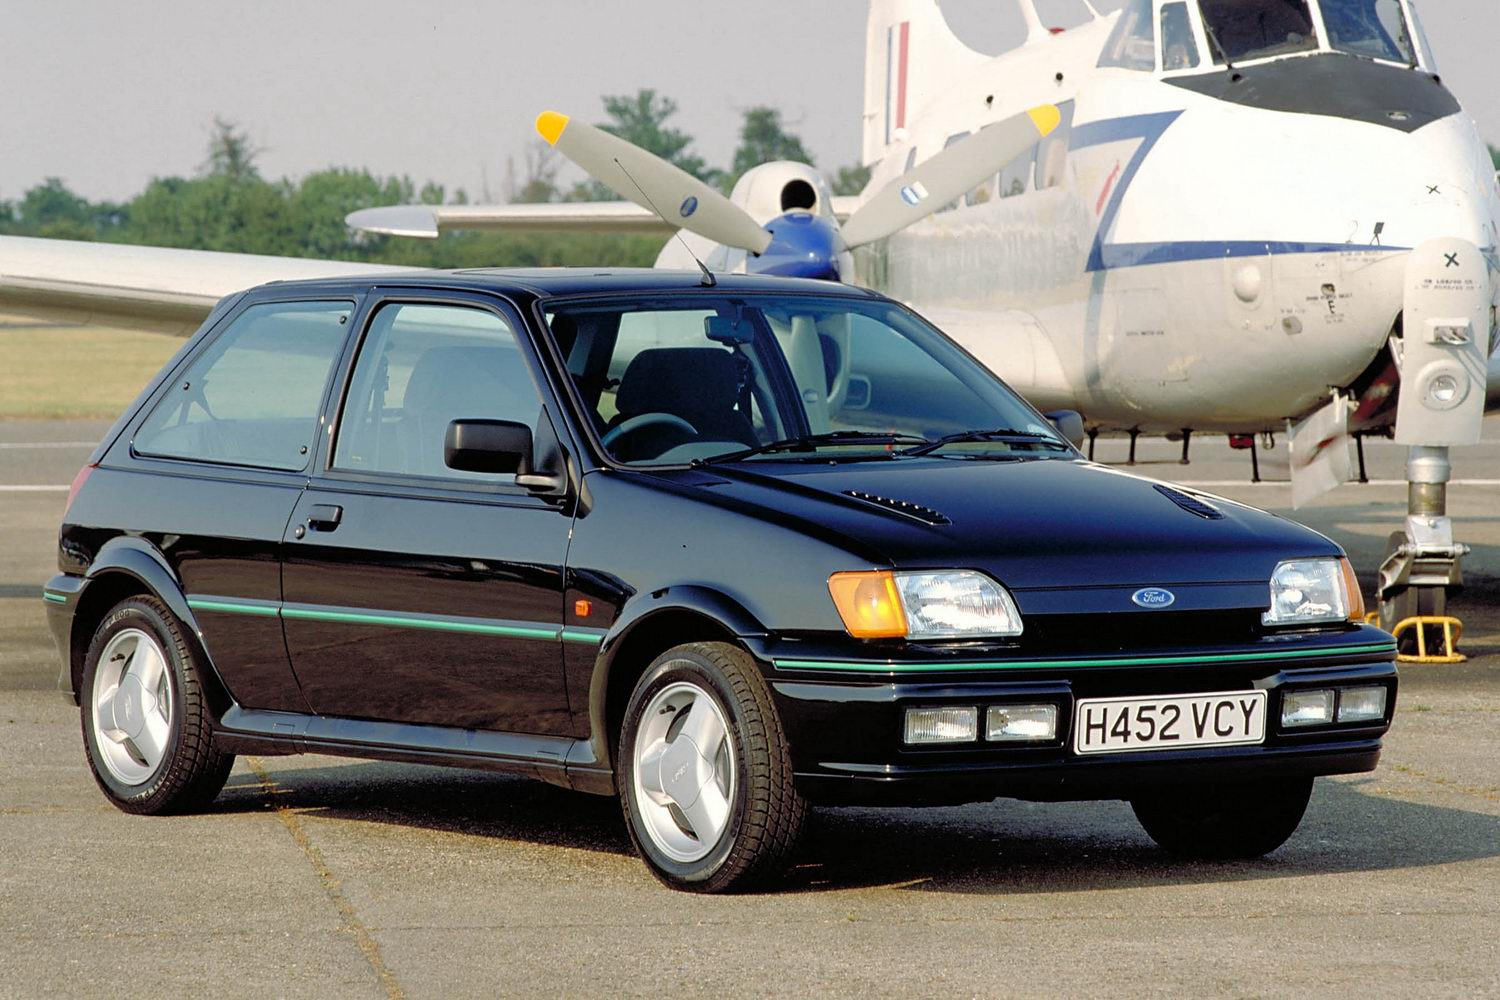 Should we revitalise loved car names?